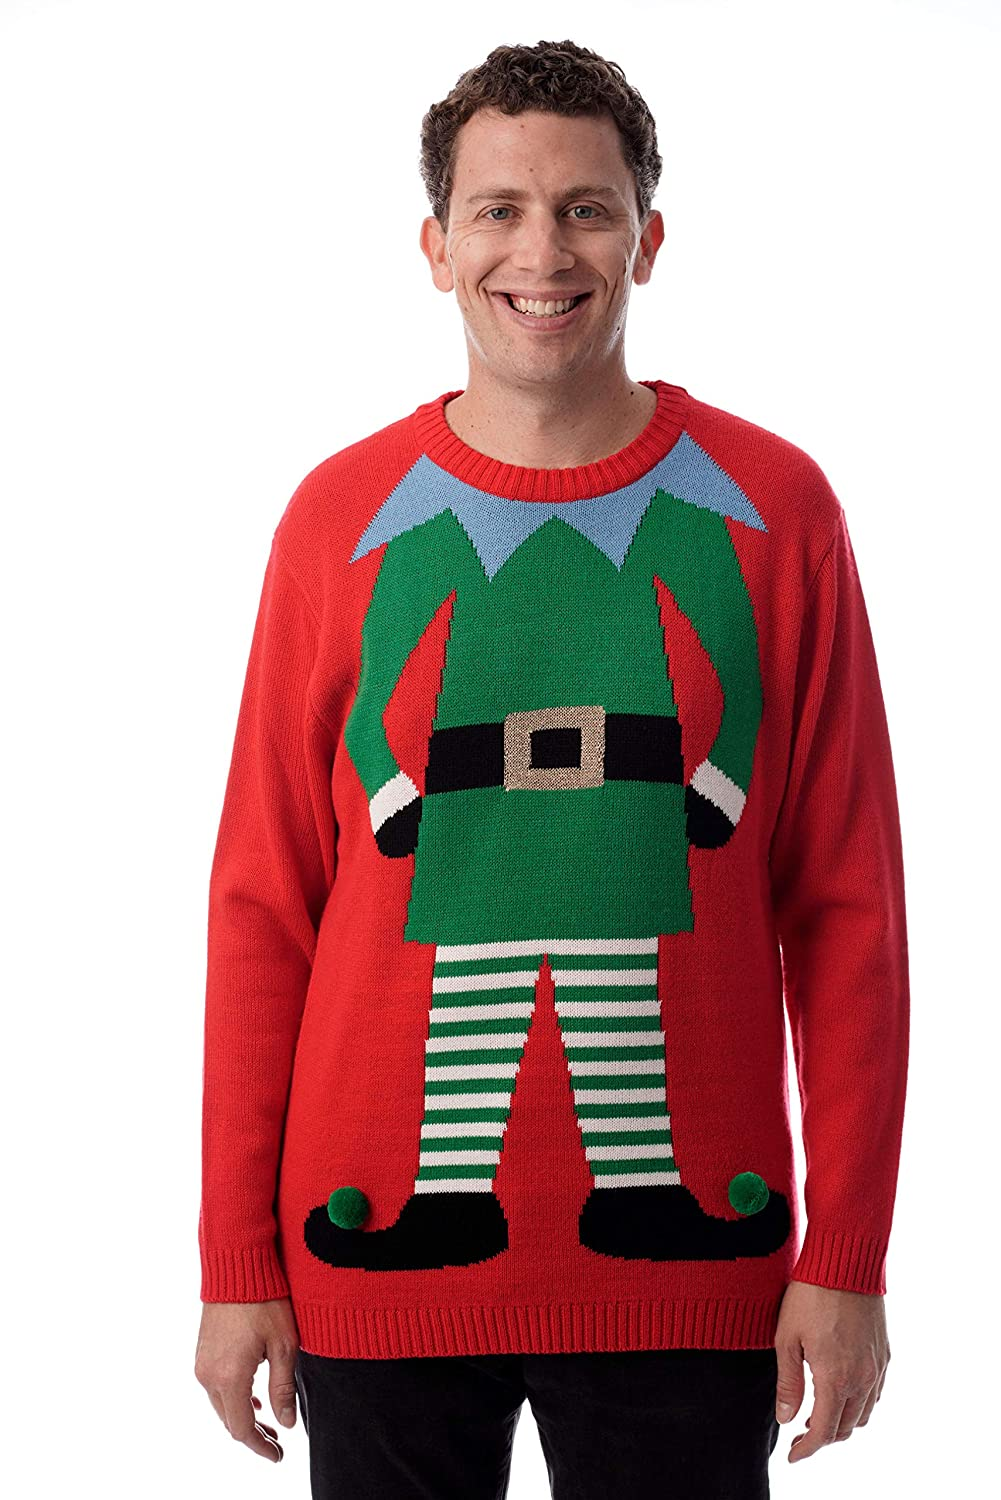 235476f0909f #followme Mens Ugly Christmas Sweater - Sweaters for Men